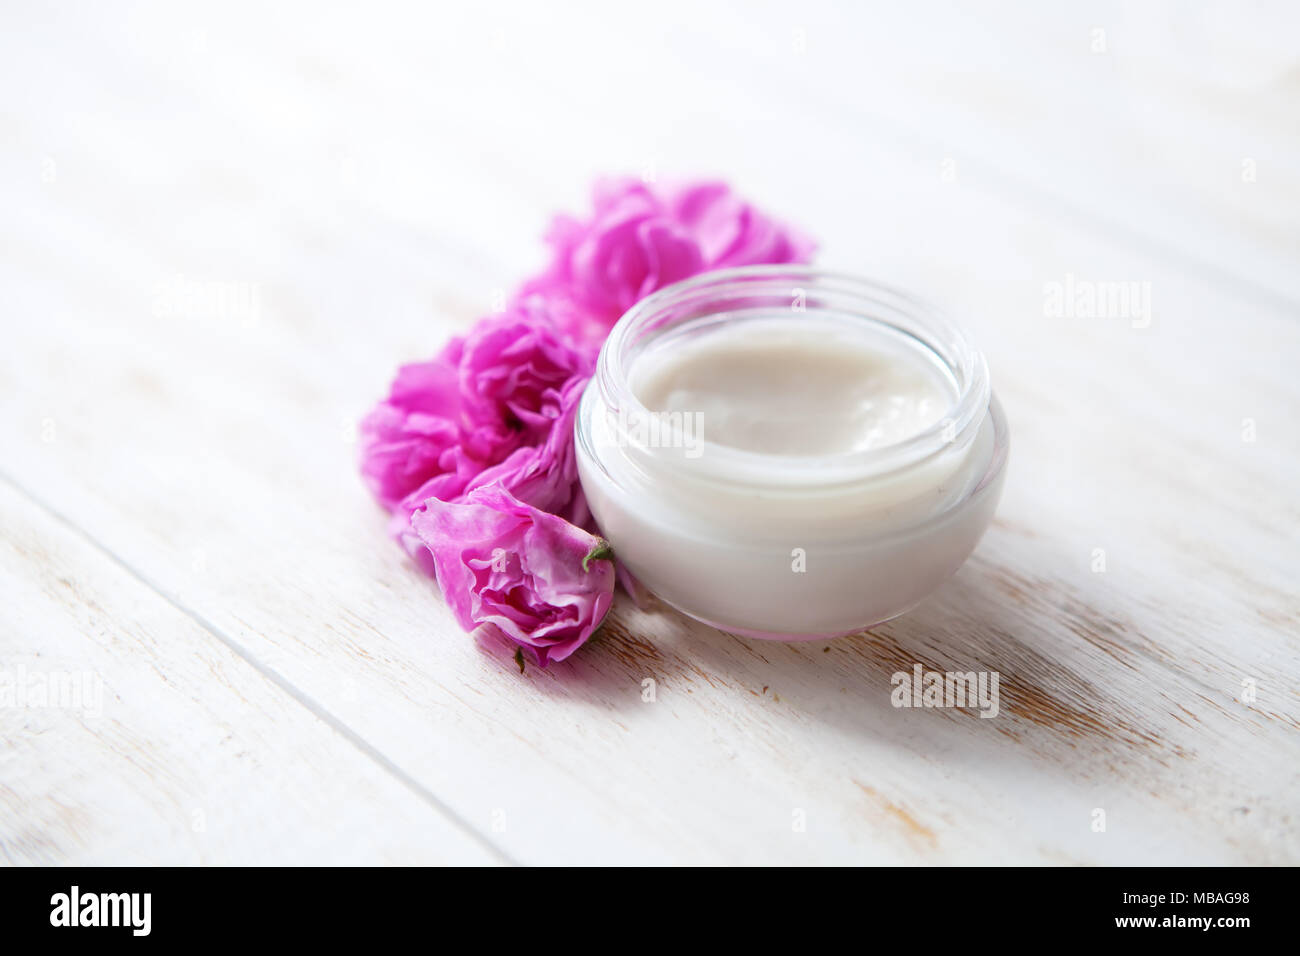 Tired skin cosmetic cream facial skincare medical treatment therapy, anti aging hydrate dermatology professional cleanser moisturizer natural hygiene  Stock Photo